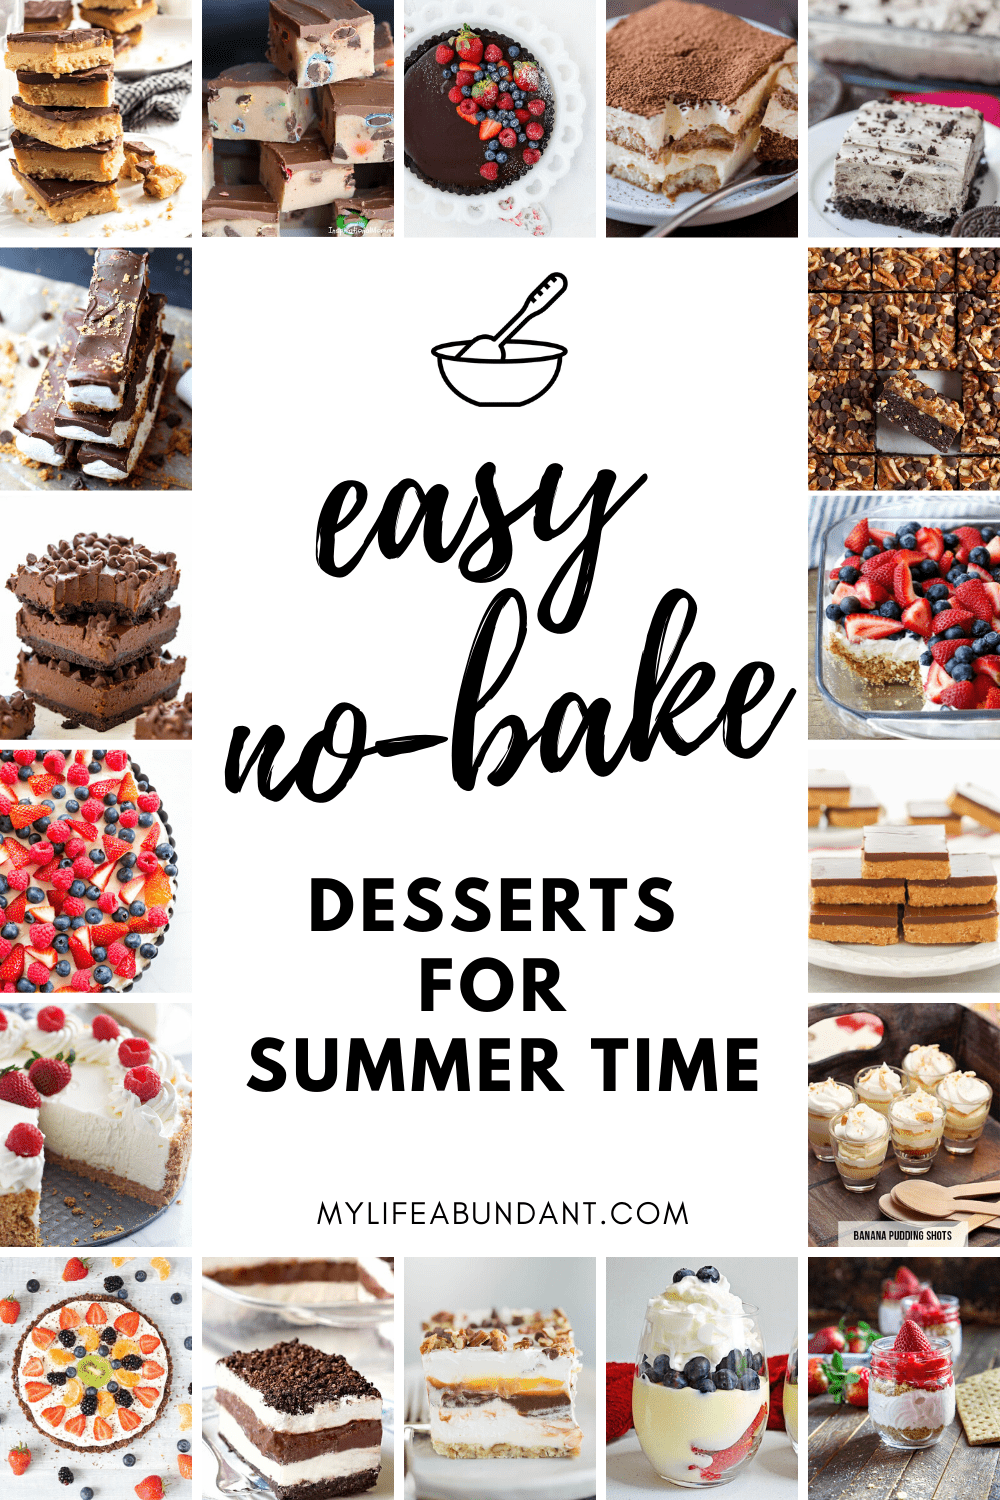 When it's too hot to turn on the oven, try making no-bake desserts for those lazy hot summer days to keep cool and enjoy.